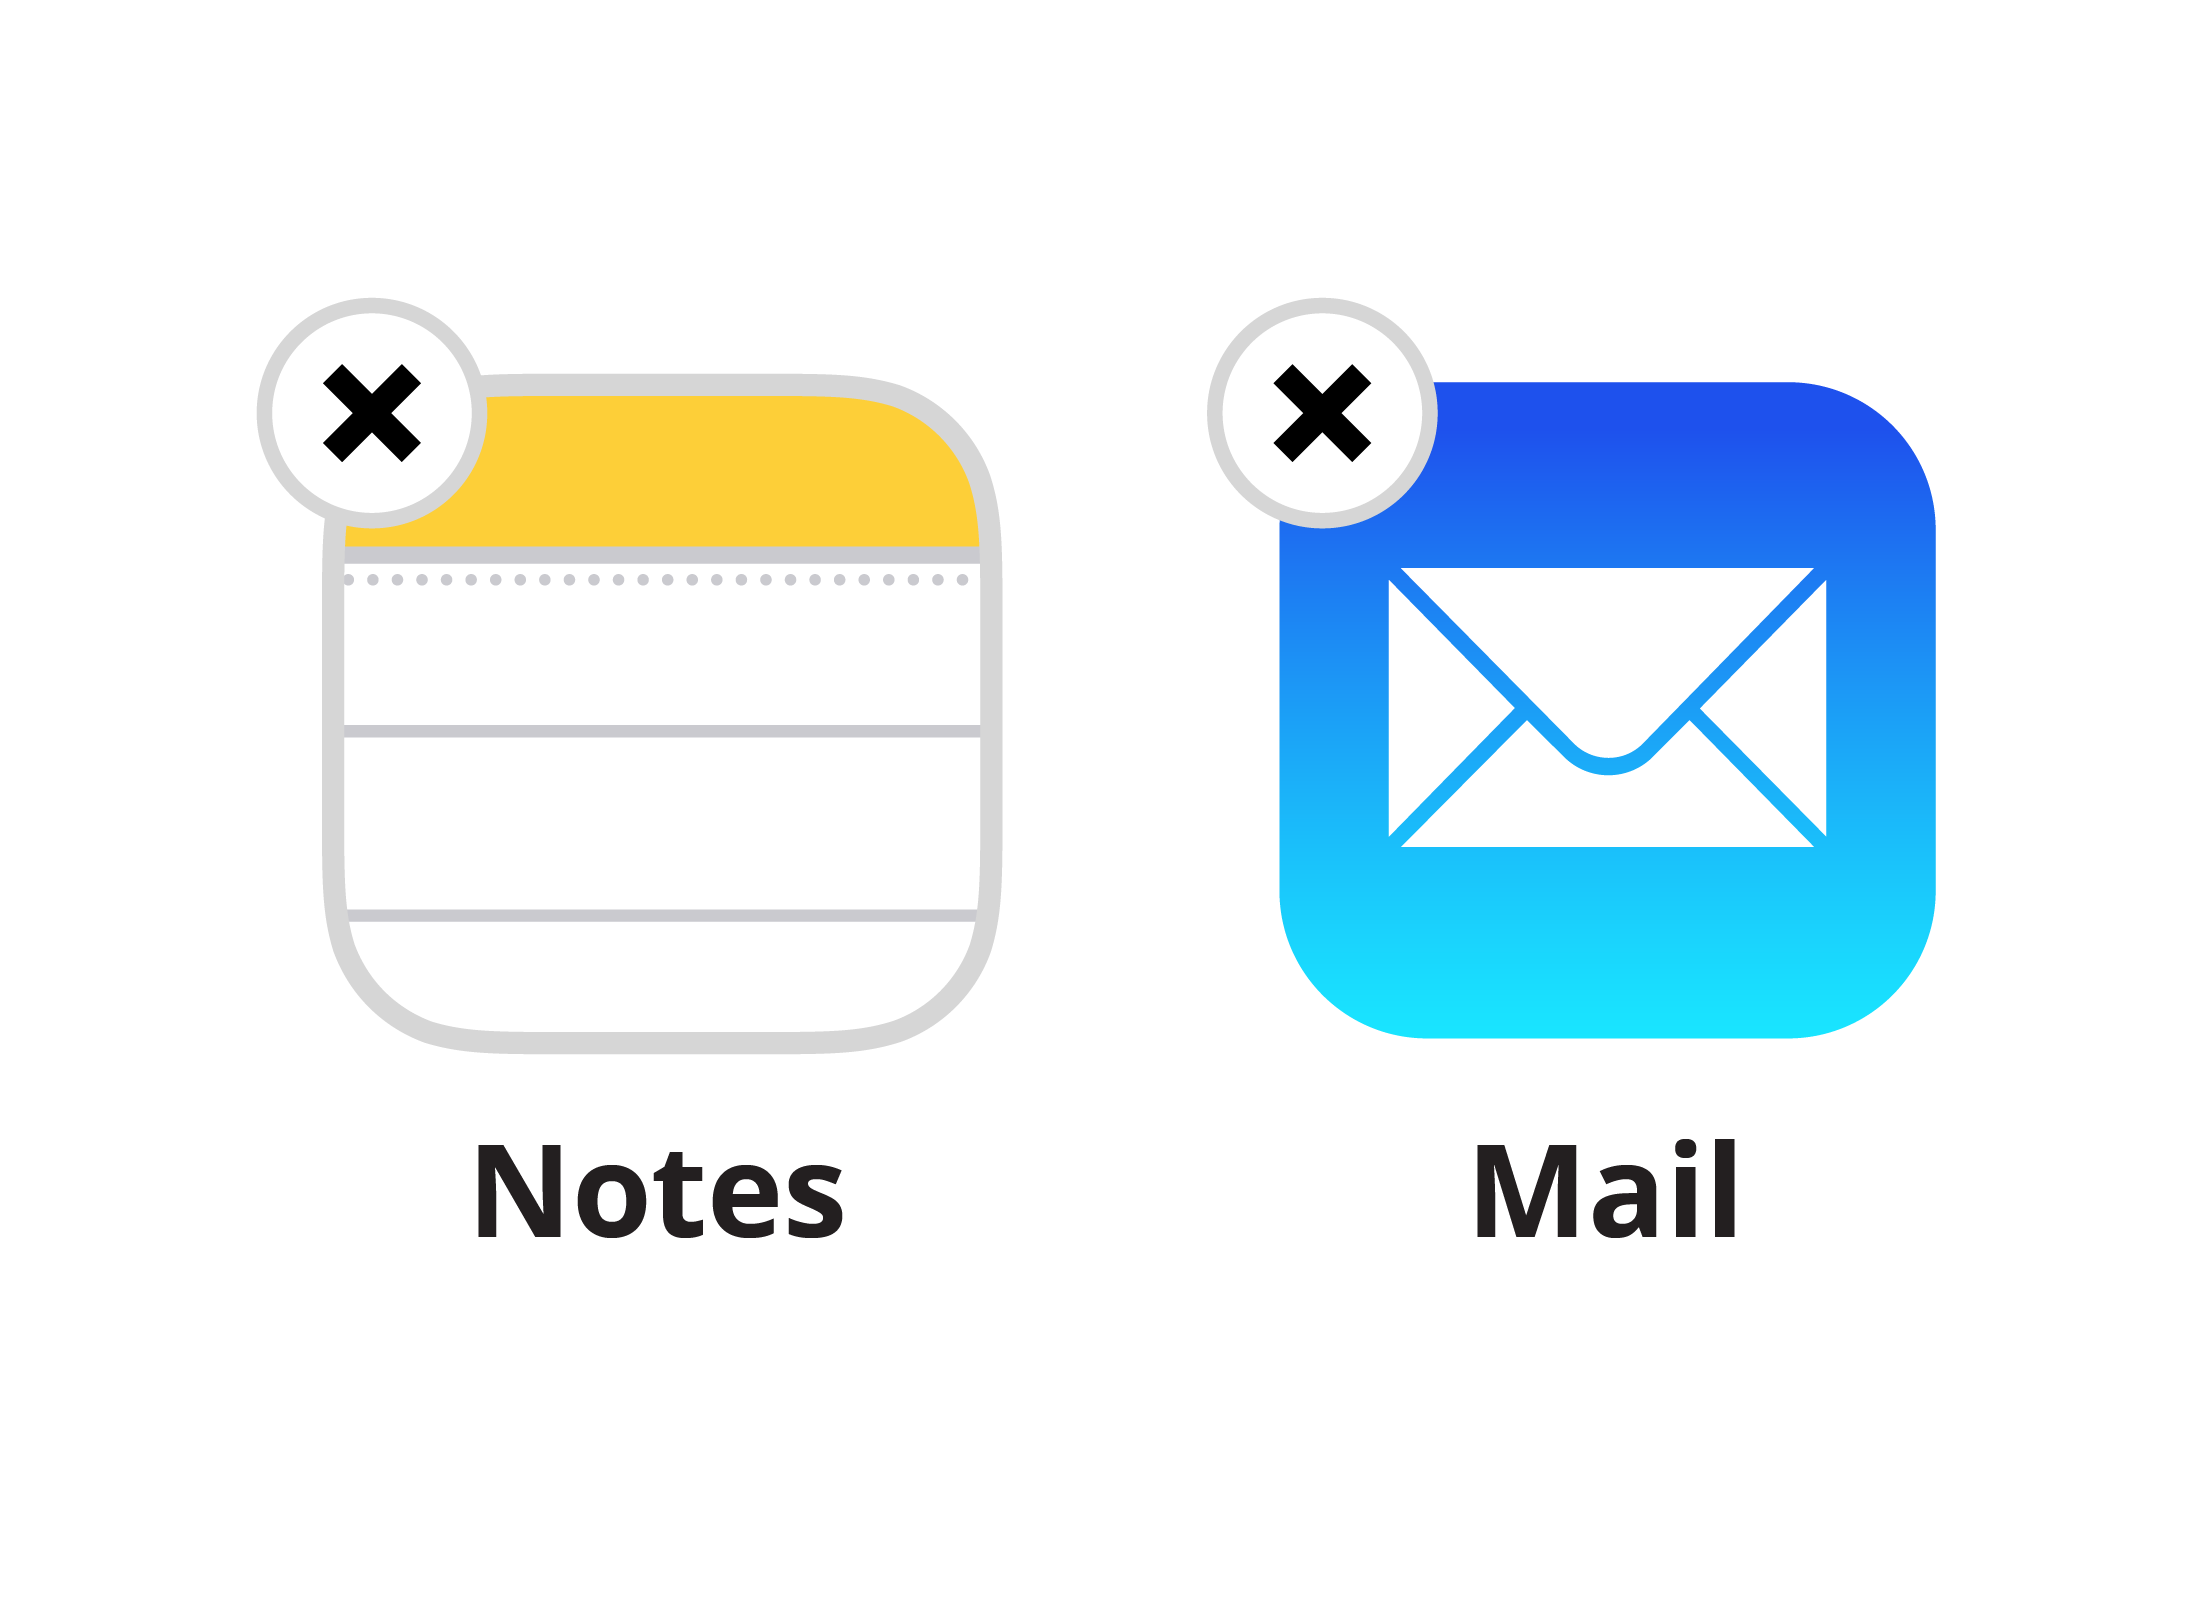 A zoomed-in view of two apps, showing the 'x' in the corner of the icons indicating they can be deleted